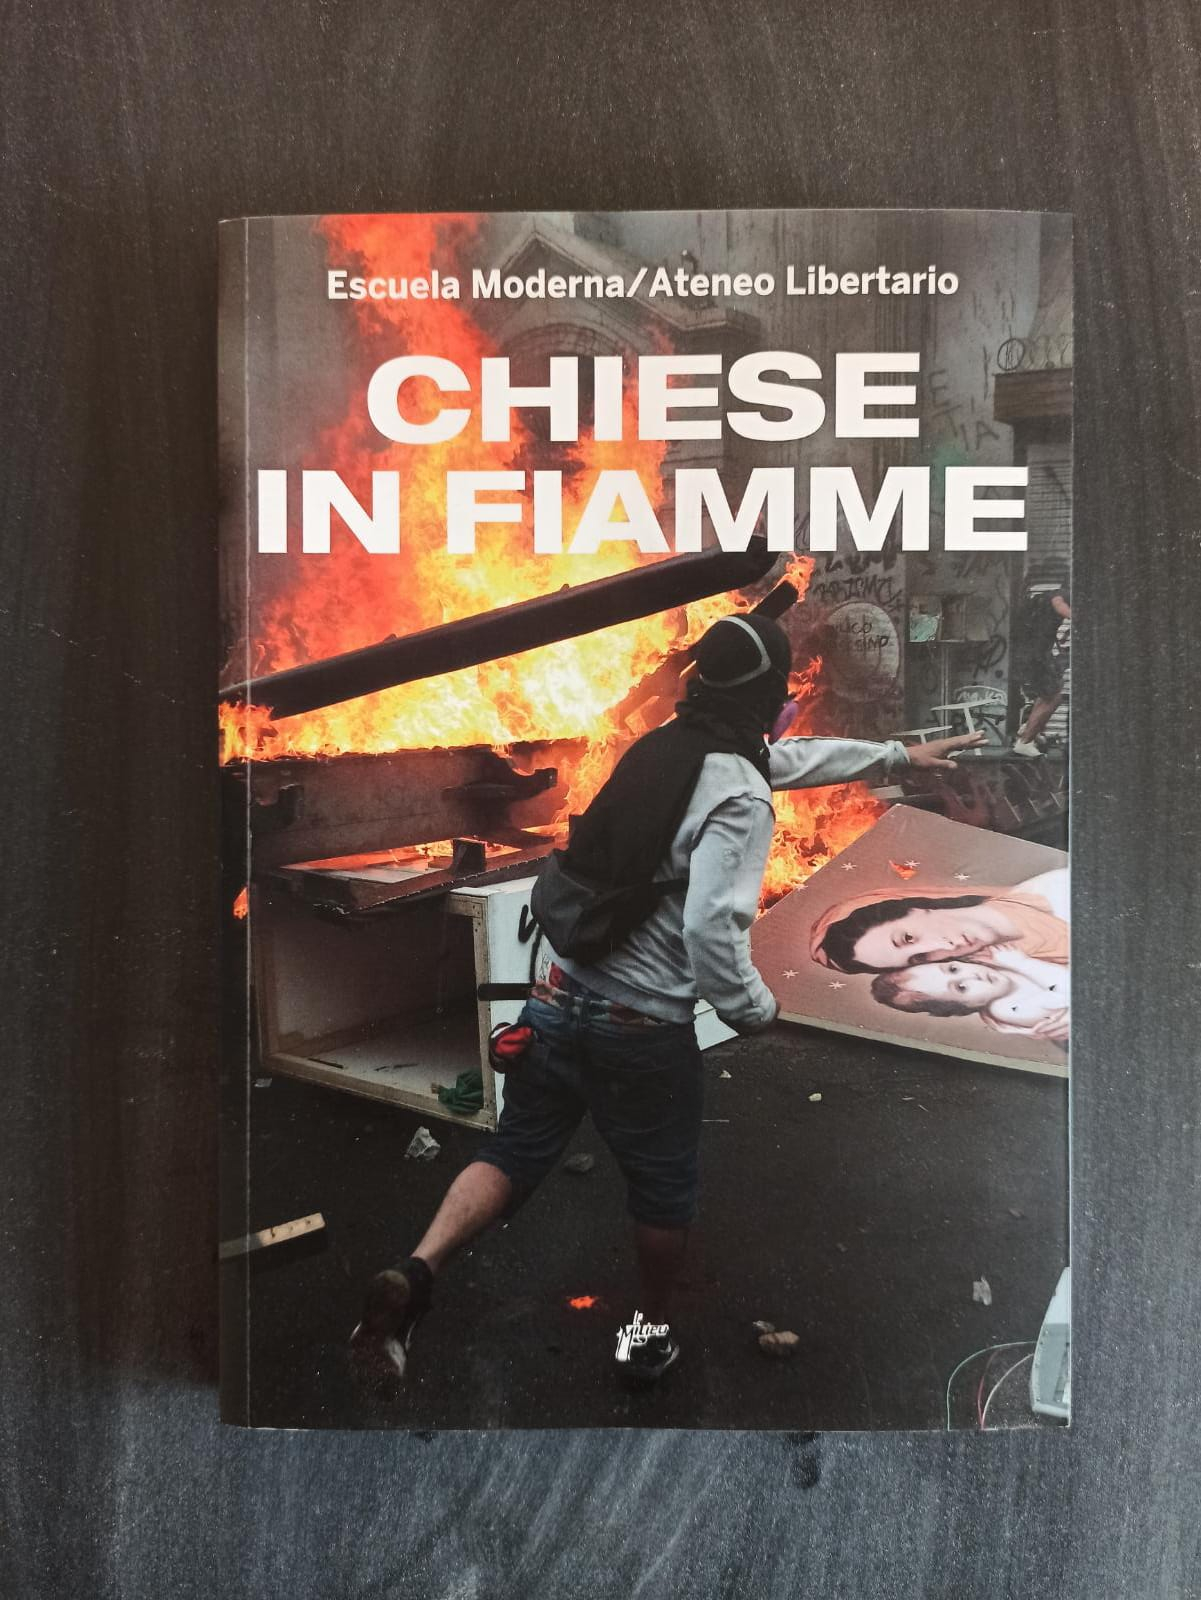 Chiese in fiamme